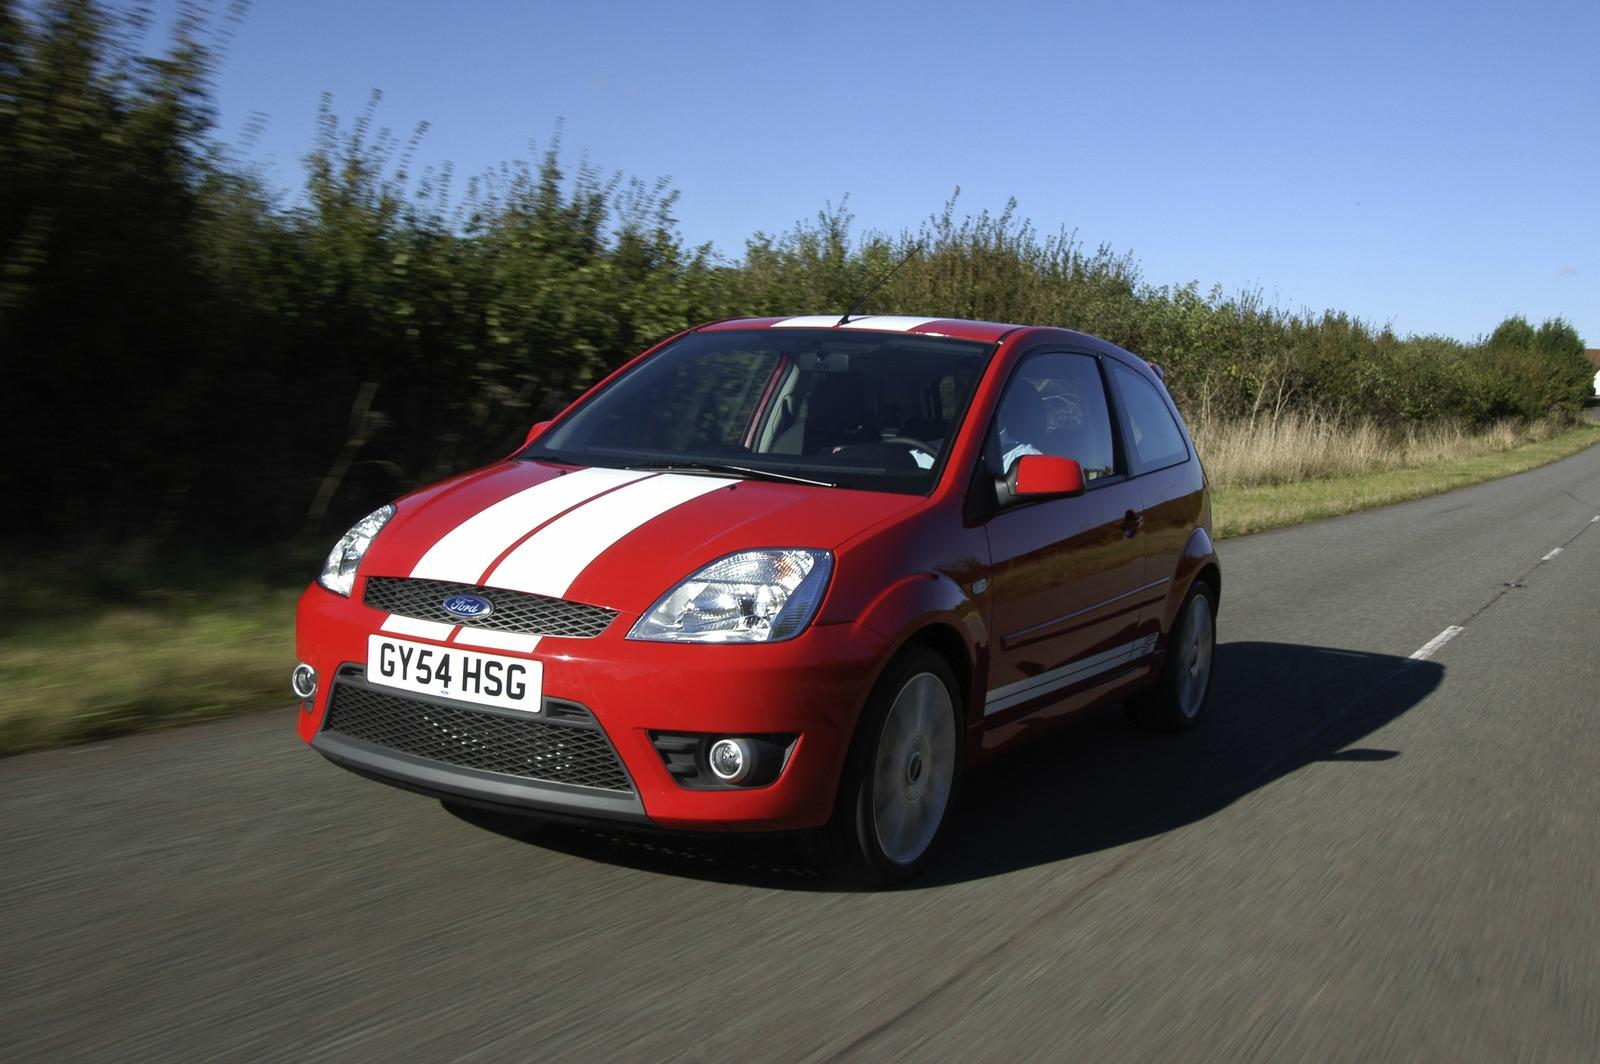 2007 ford fiesta st picture 154435 car review top speed. Black Bedroom Furniture Sets. Home Design Ideas